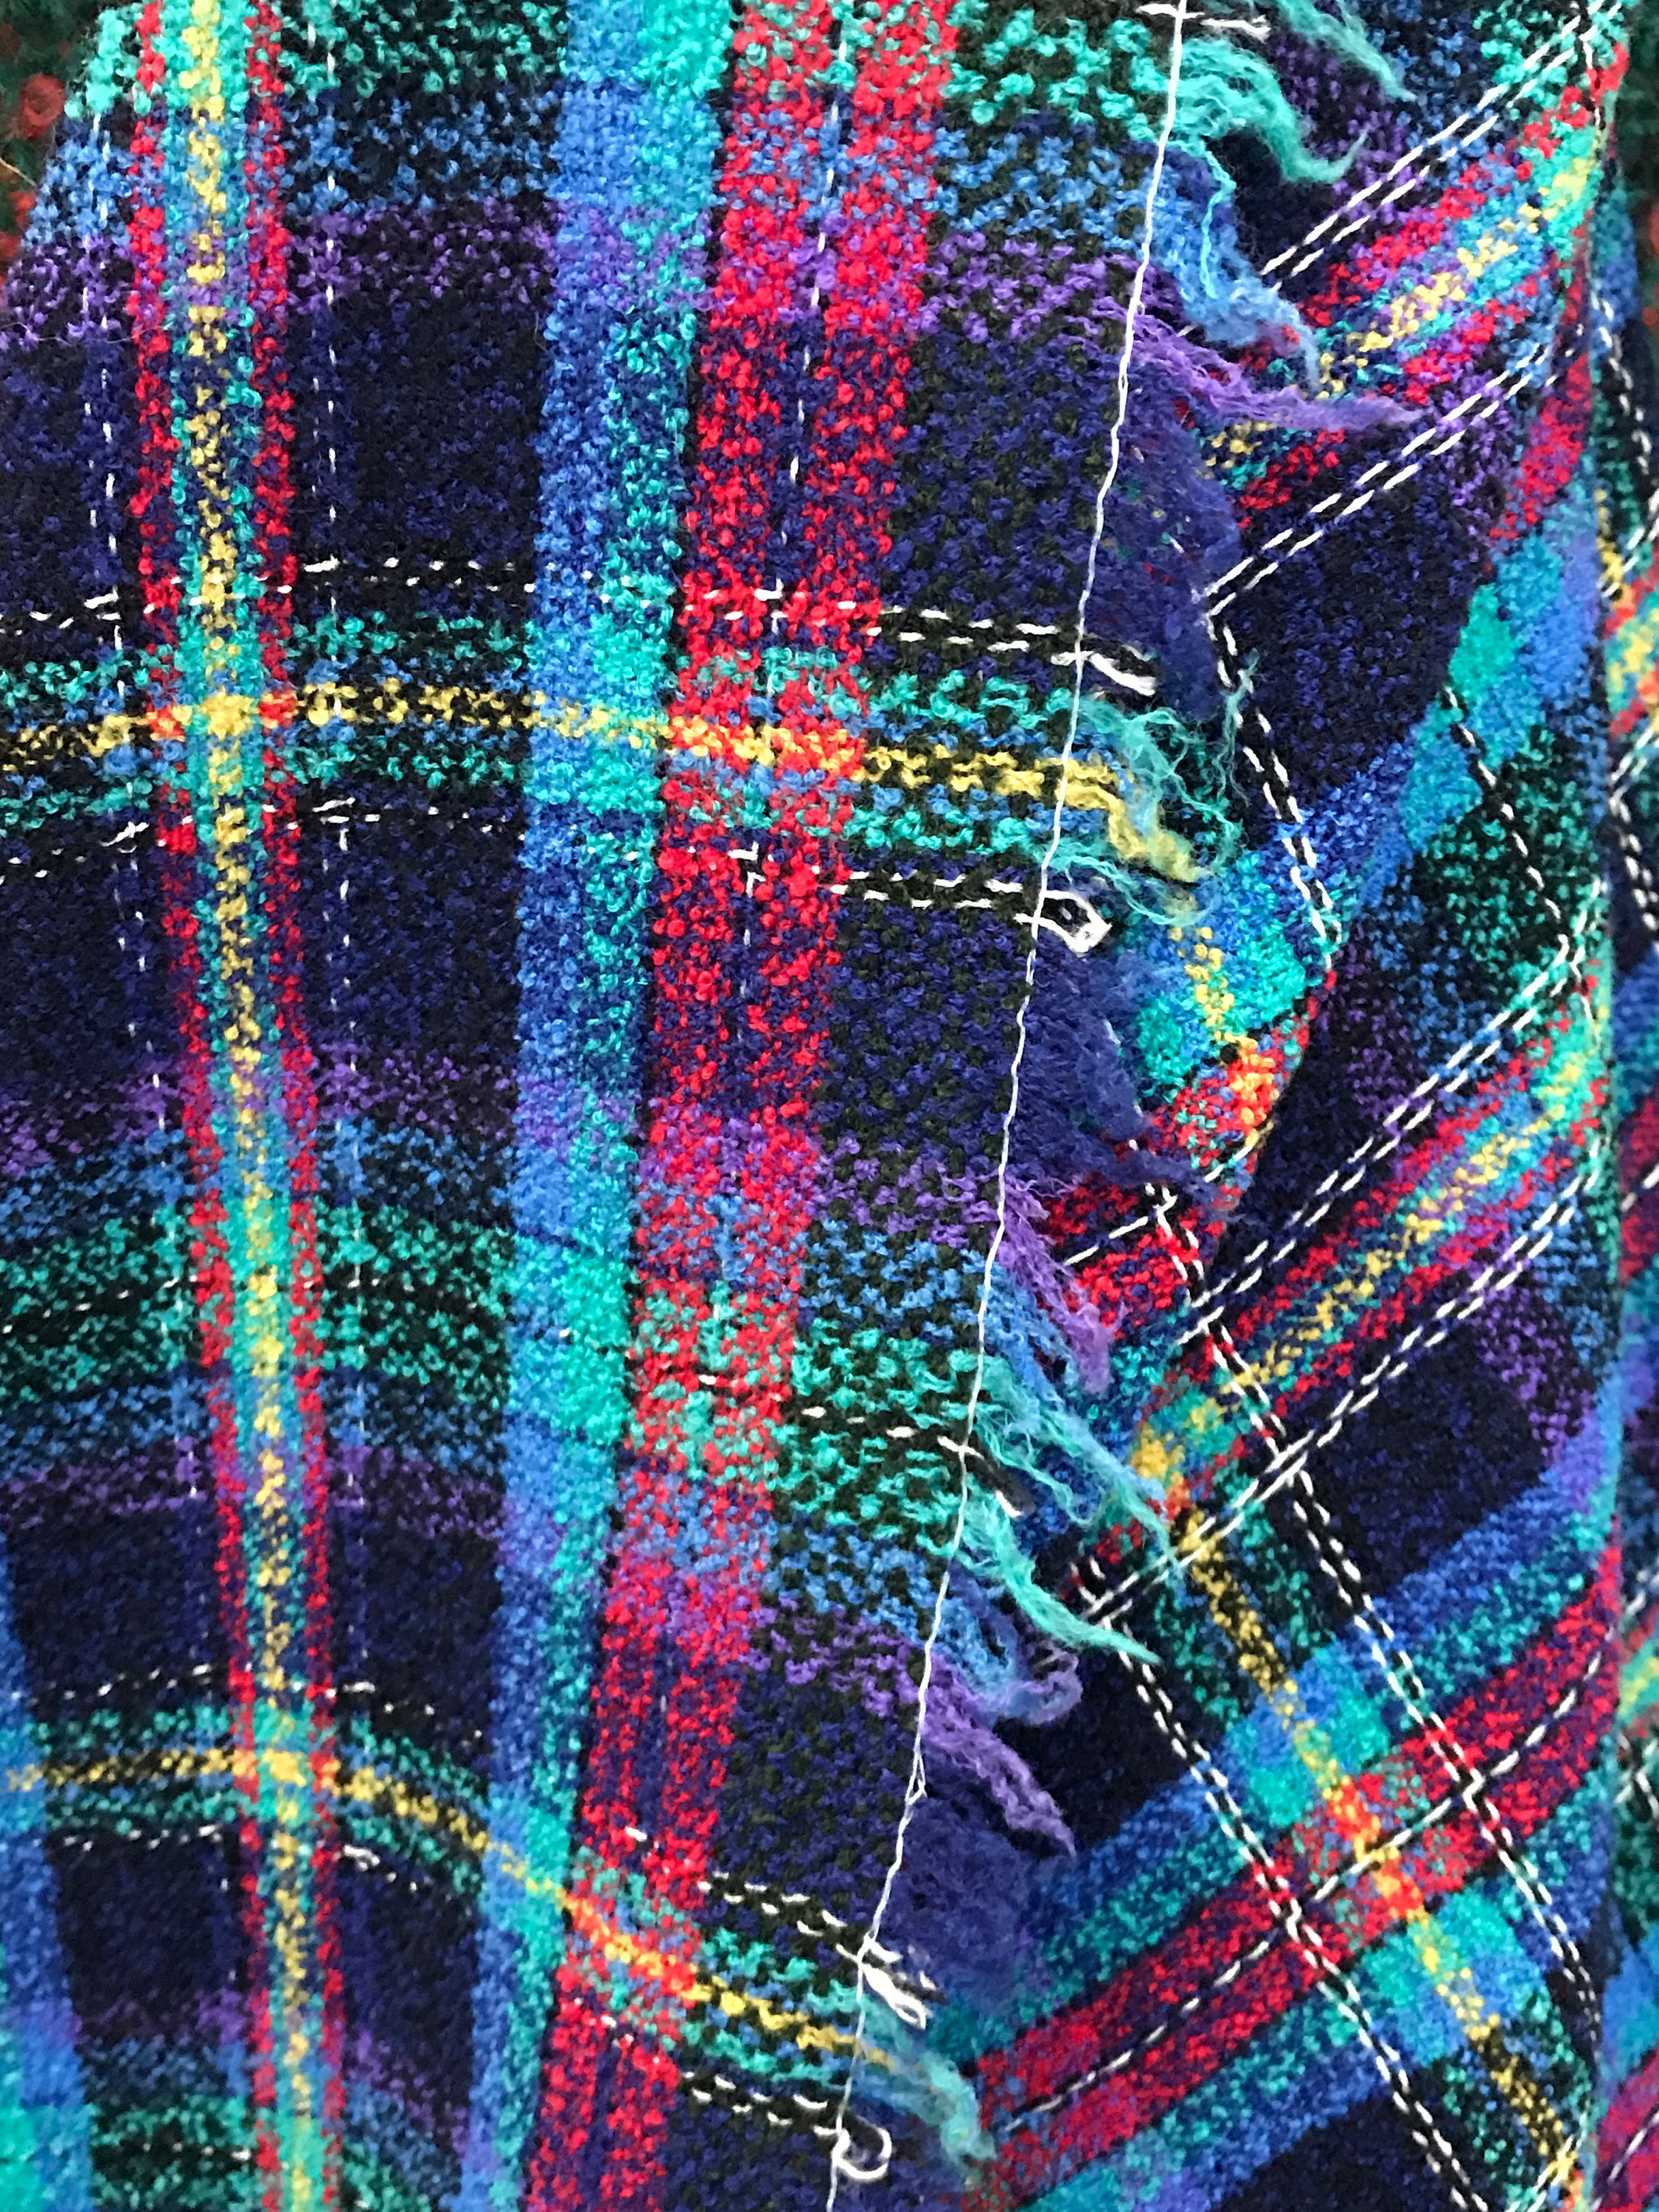 tweed boucle check fabric Red blue pure wool check fabric kilt plaid skirt bustle sewing dressmaking shawl stole scarf 150cm 60""